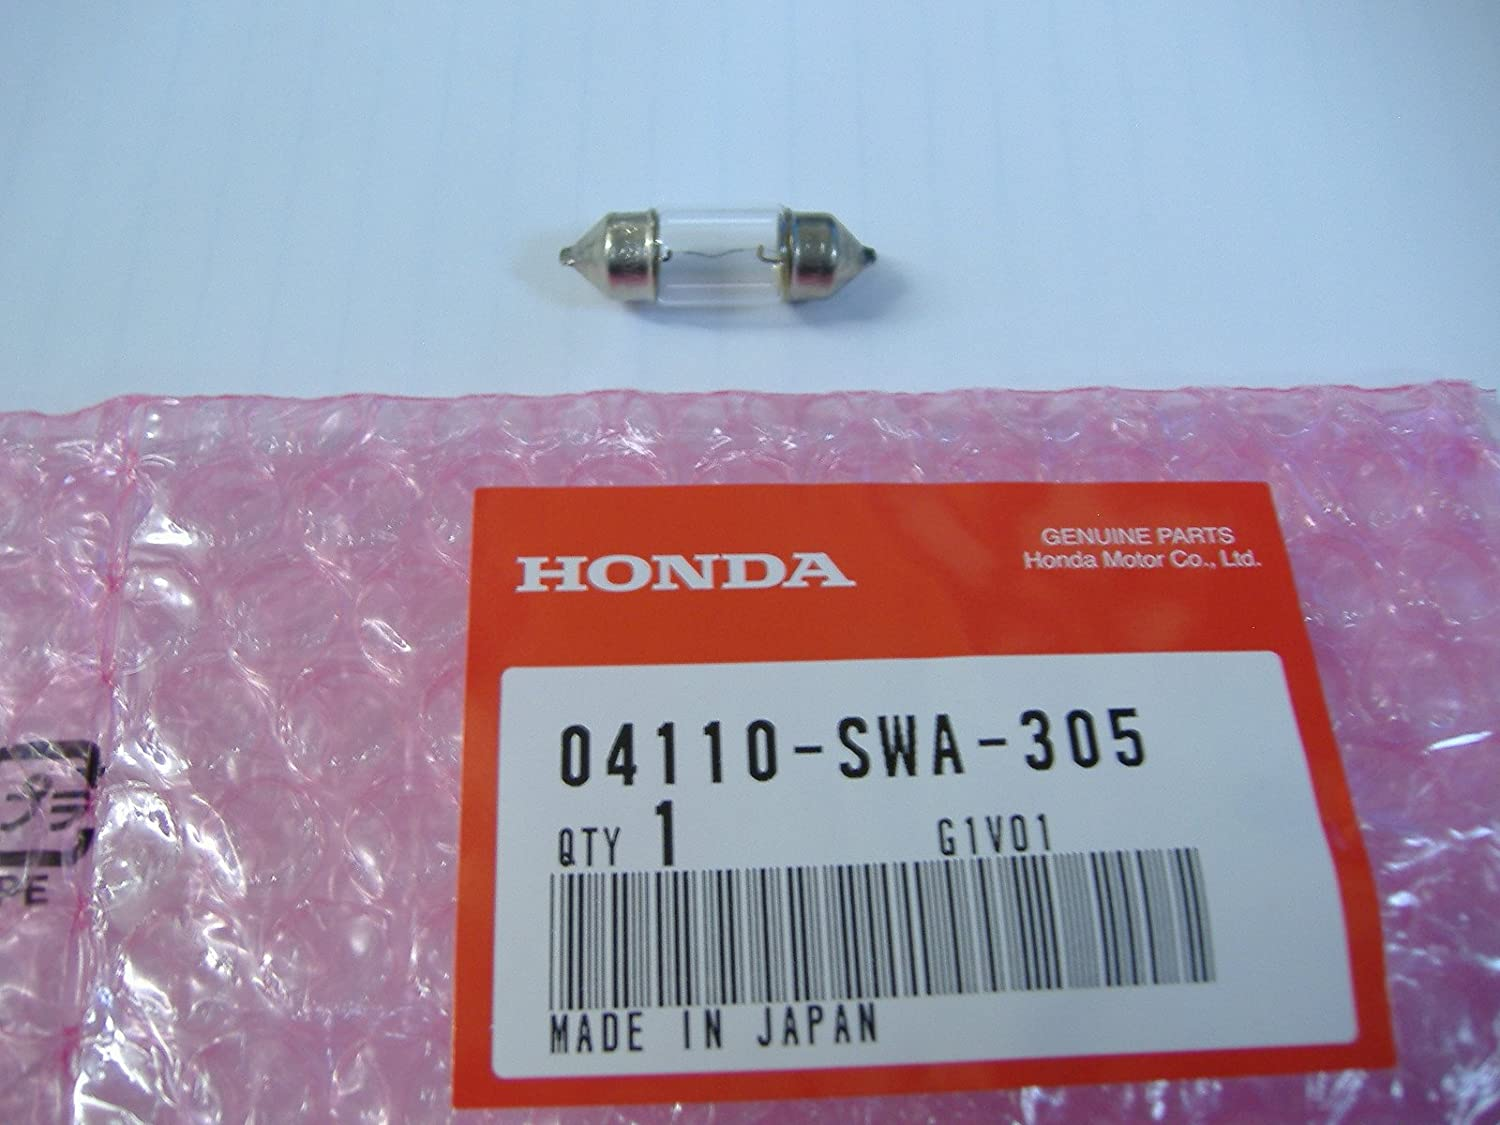 Honda Genuine Oem Dome Light Map Bulb 04110 Swa 1991 Accord Fuse Box Location 305 Automotive